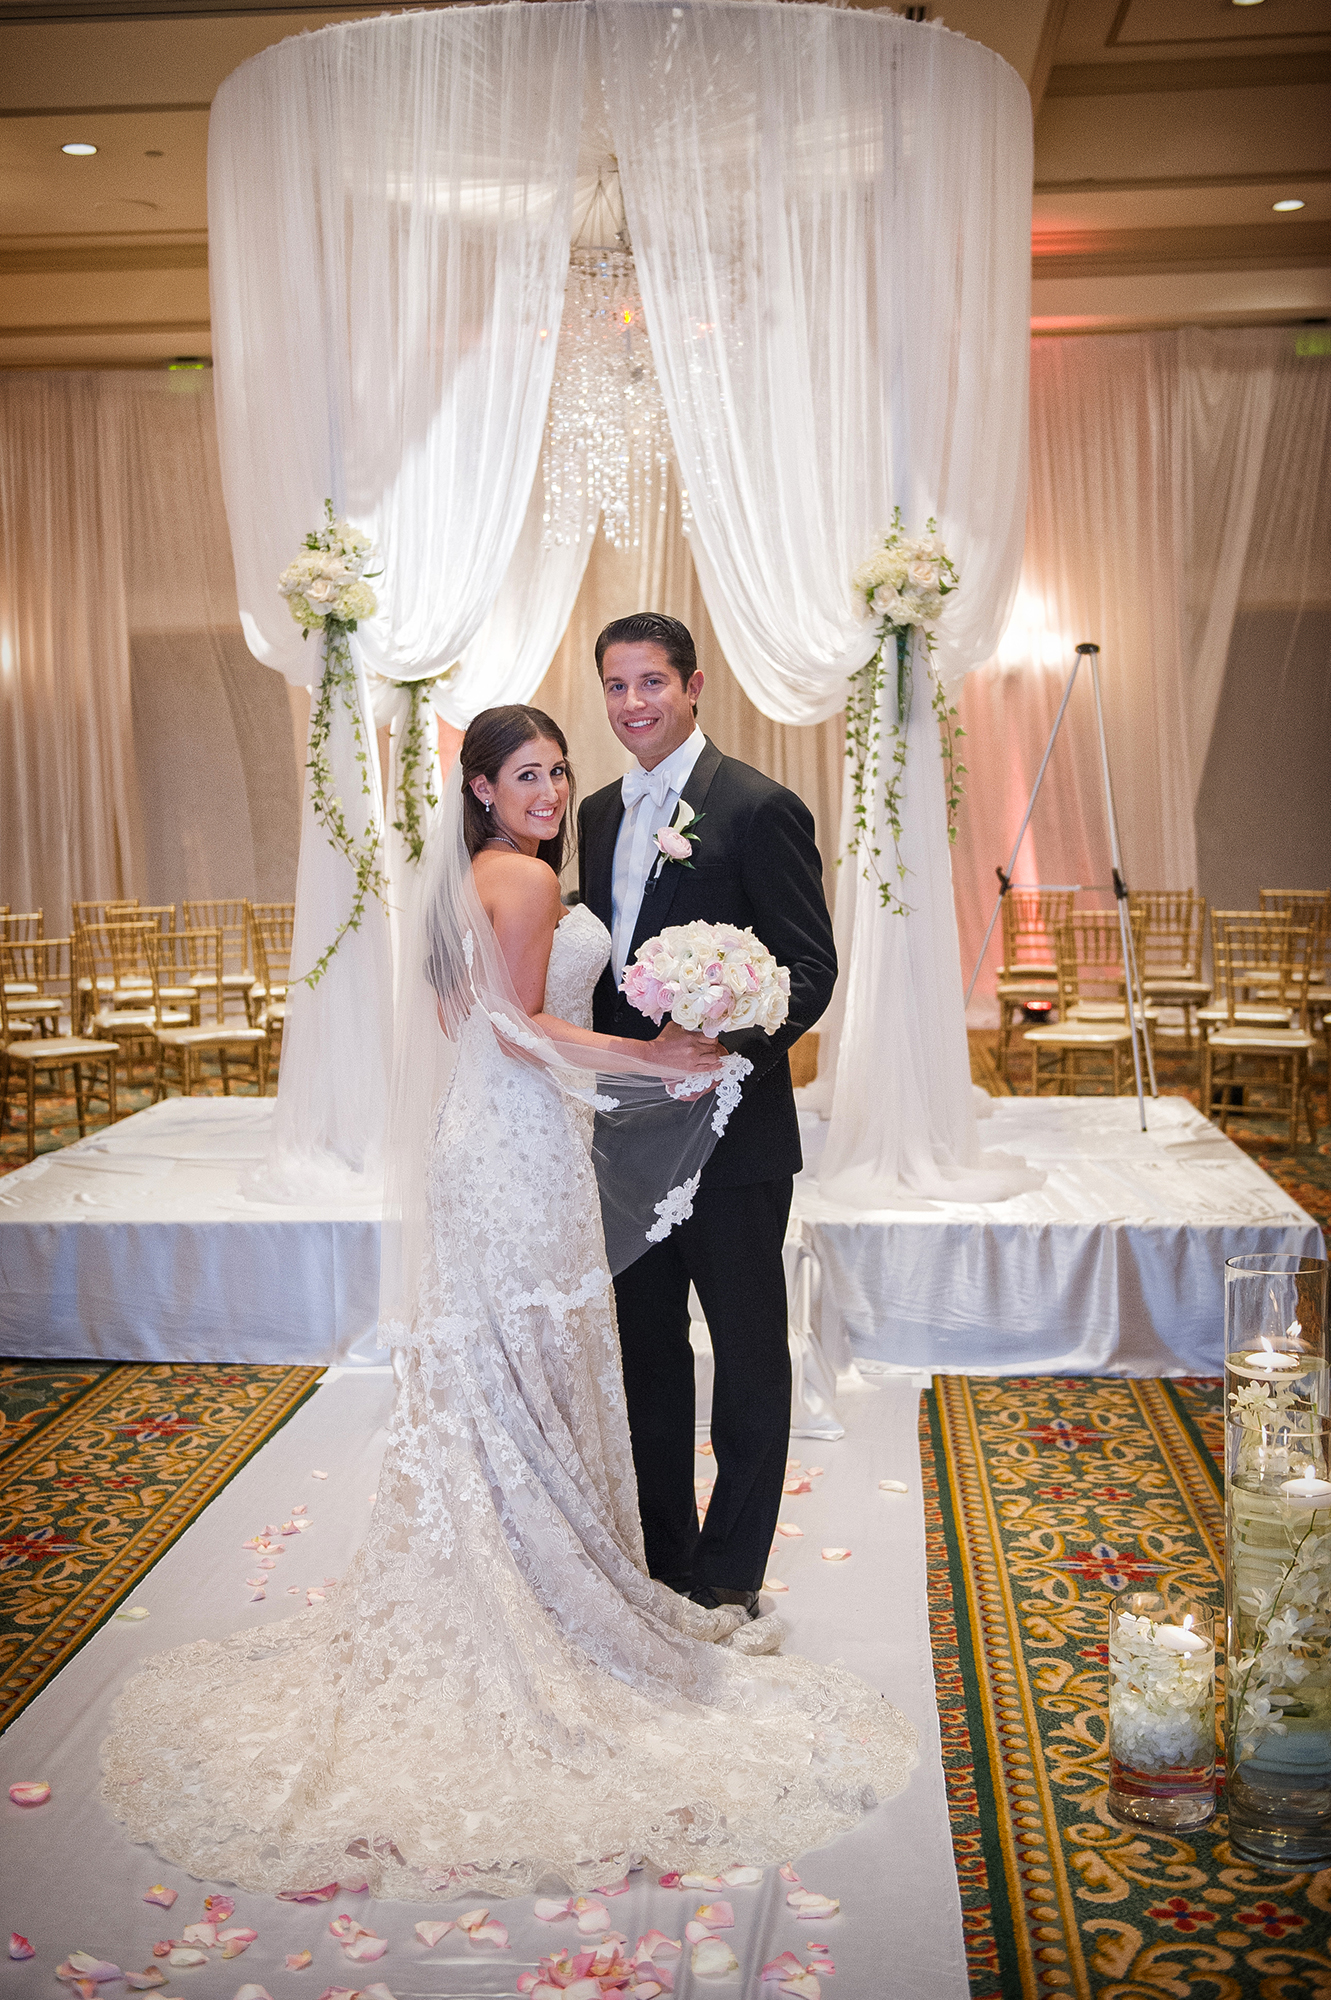 boca-raton-jewish-wedding-jeff-kolodny-photos-15